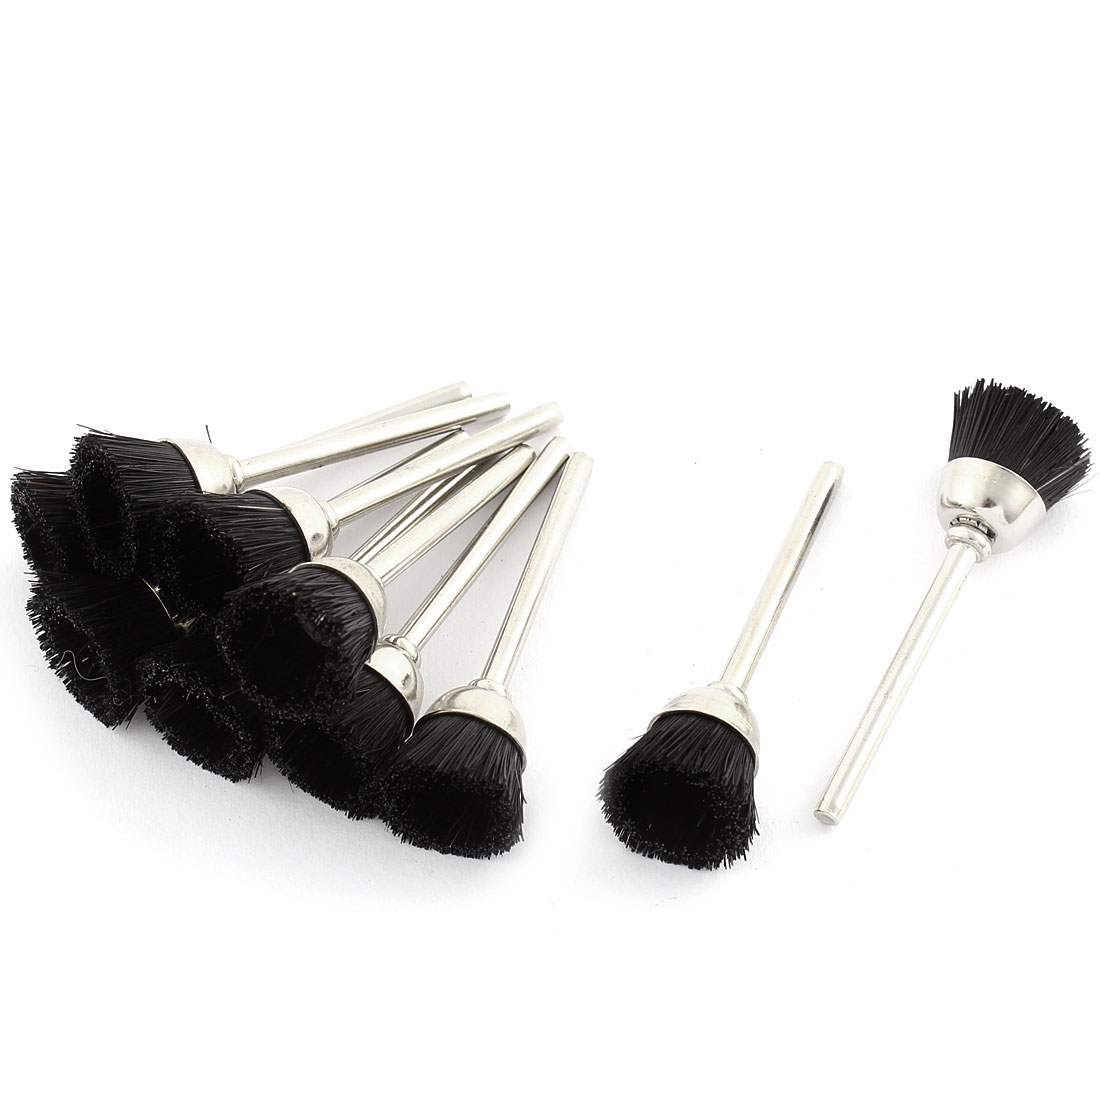 Black 15mm Dia Nylon Polishing Brushes Jewelry Cleaning Buffing Tools 10pcs